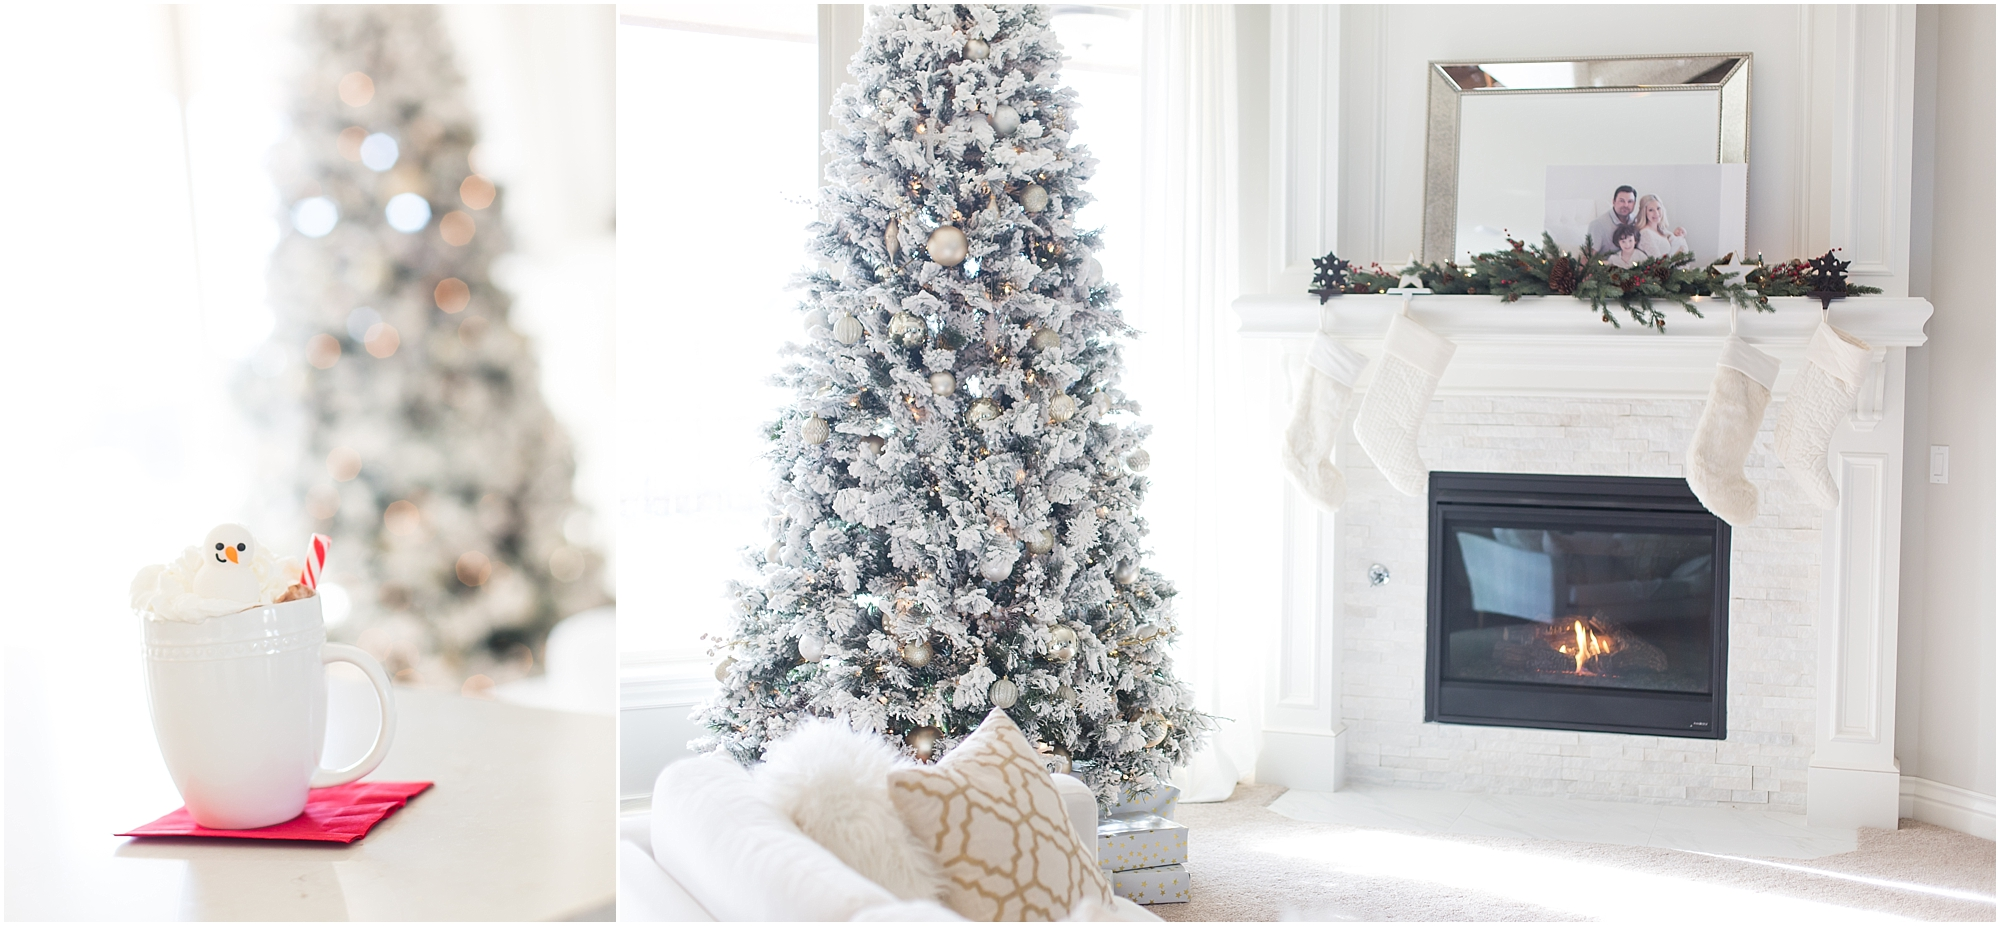 Christmas At Our Home 2015 Amber Borrell A Lifestyle Blog